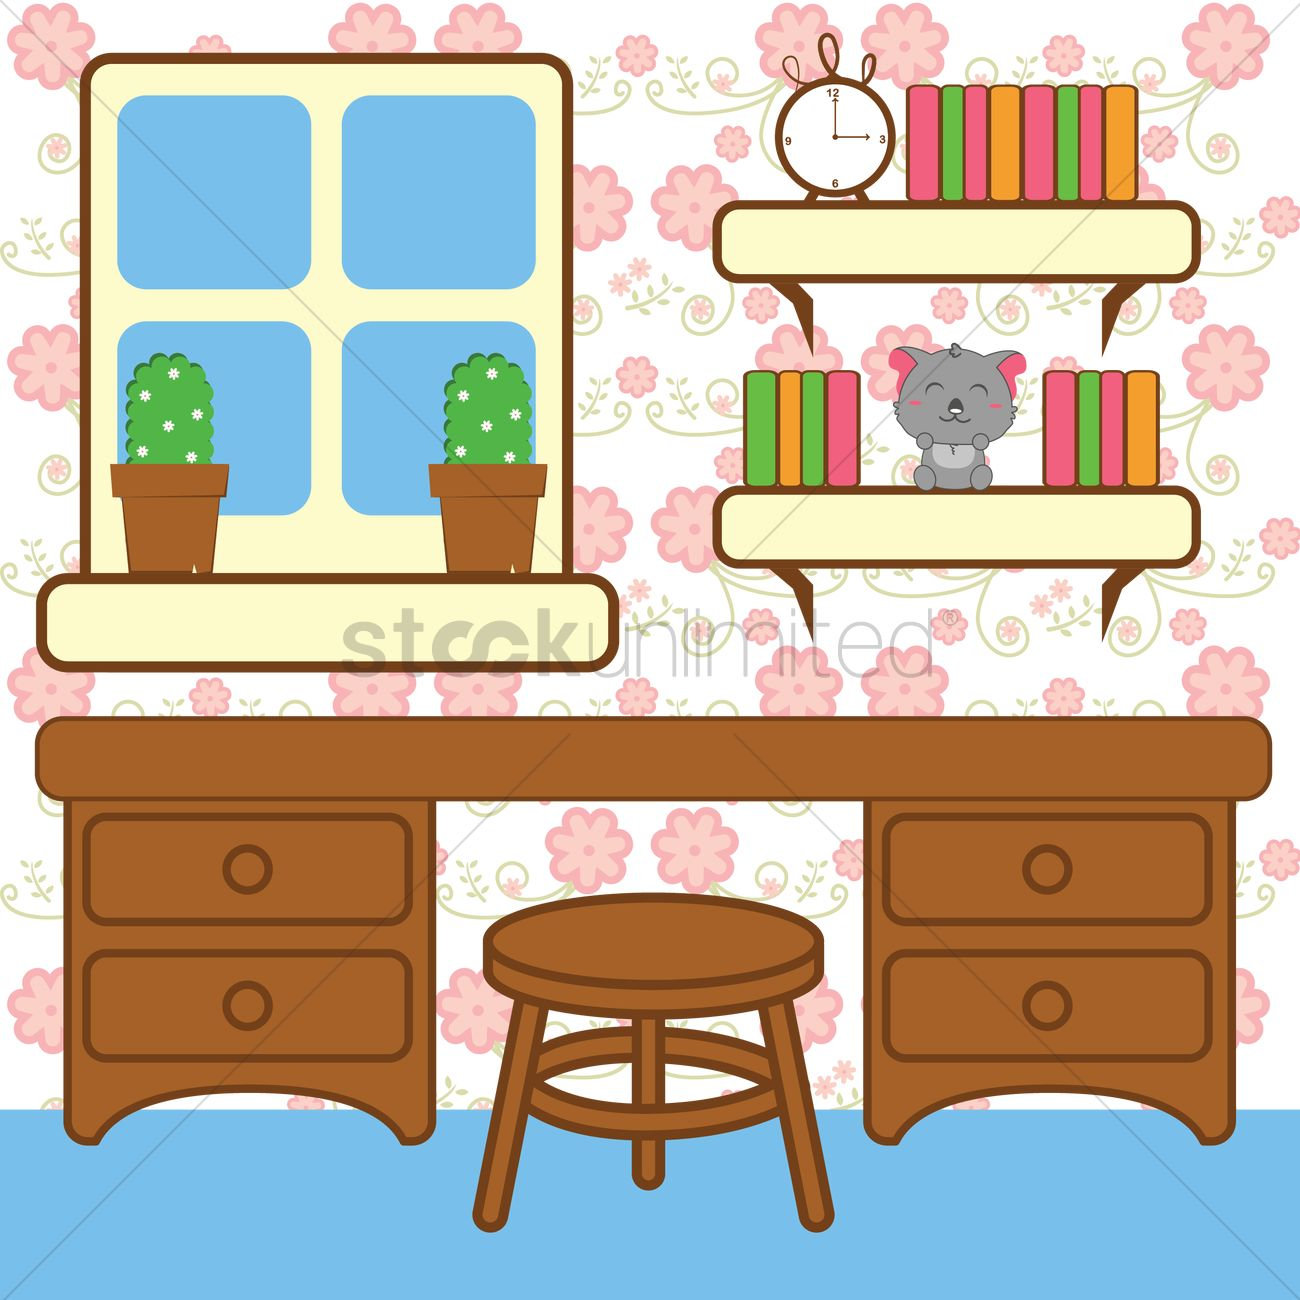 study room clipart black and white. study room clipart black and white l